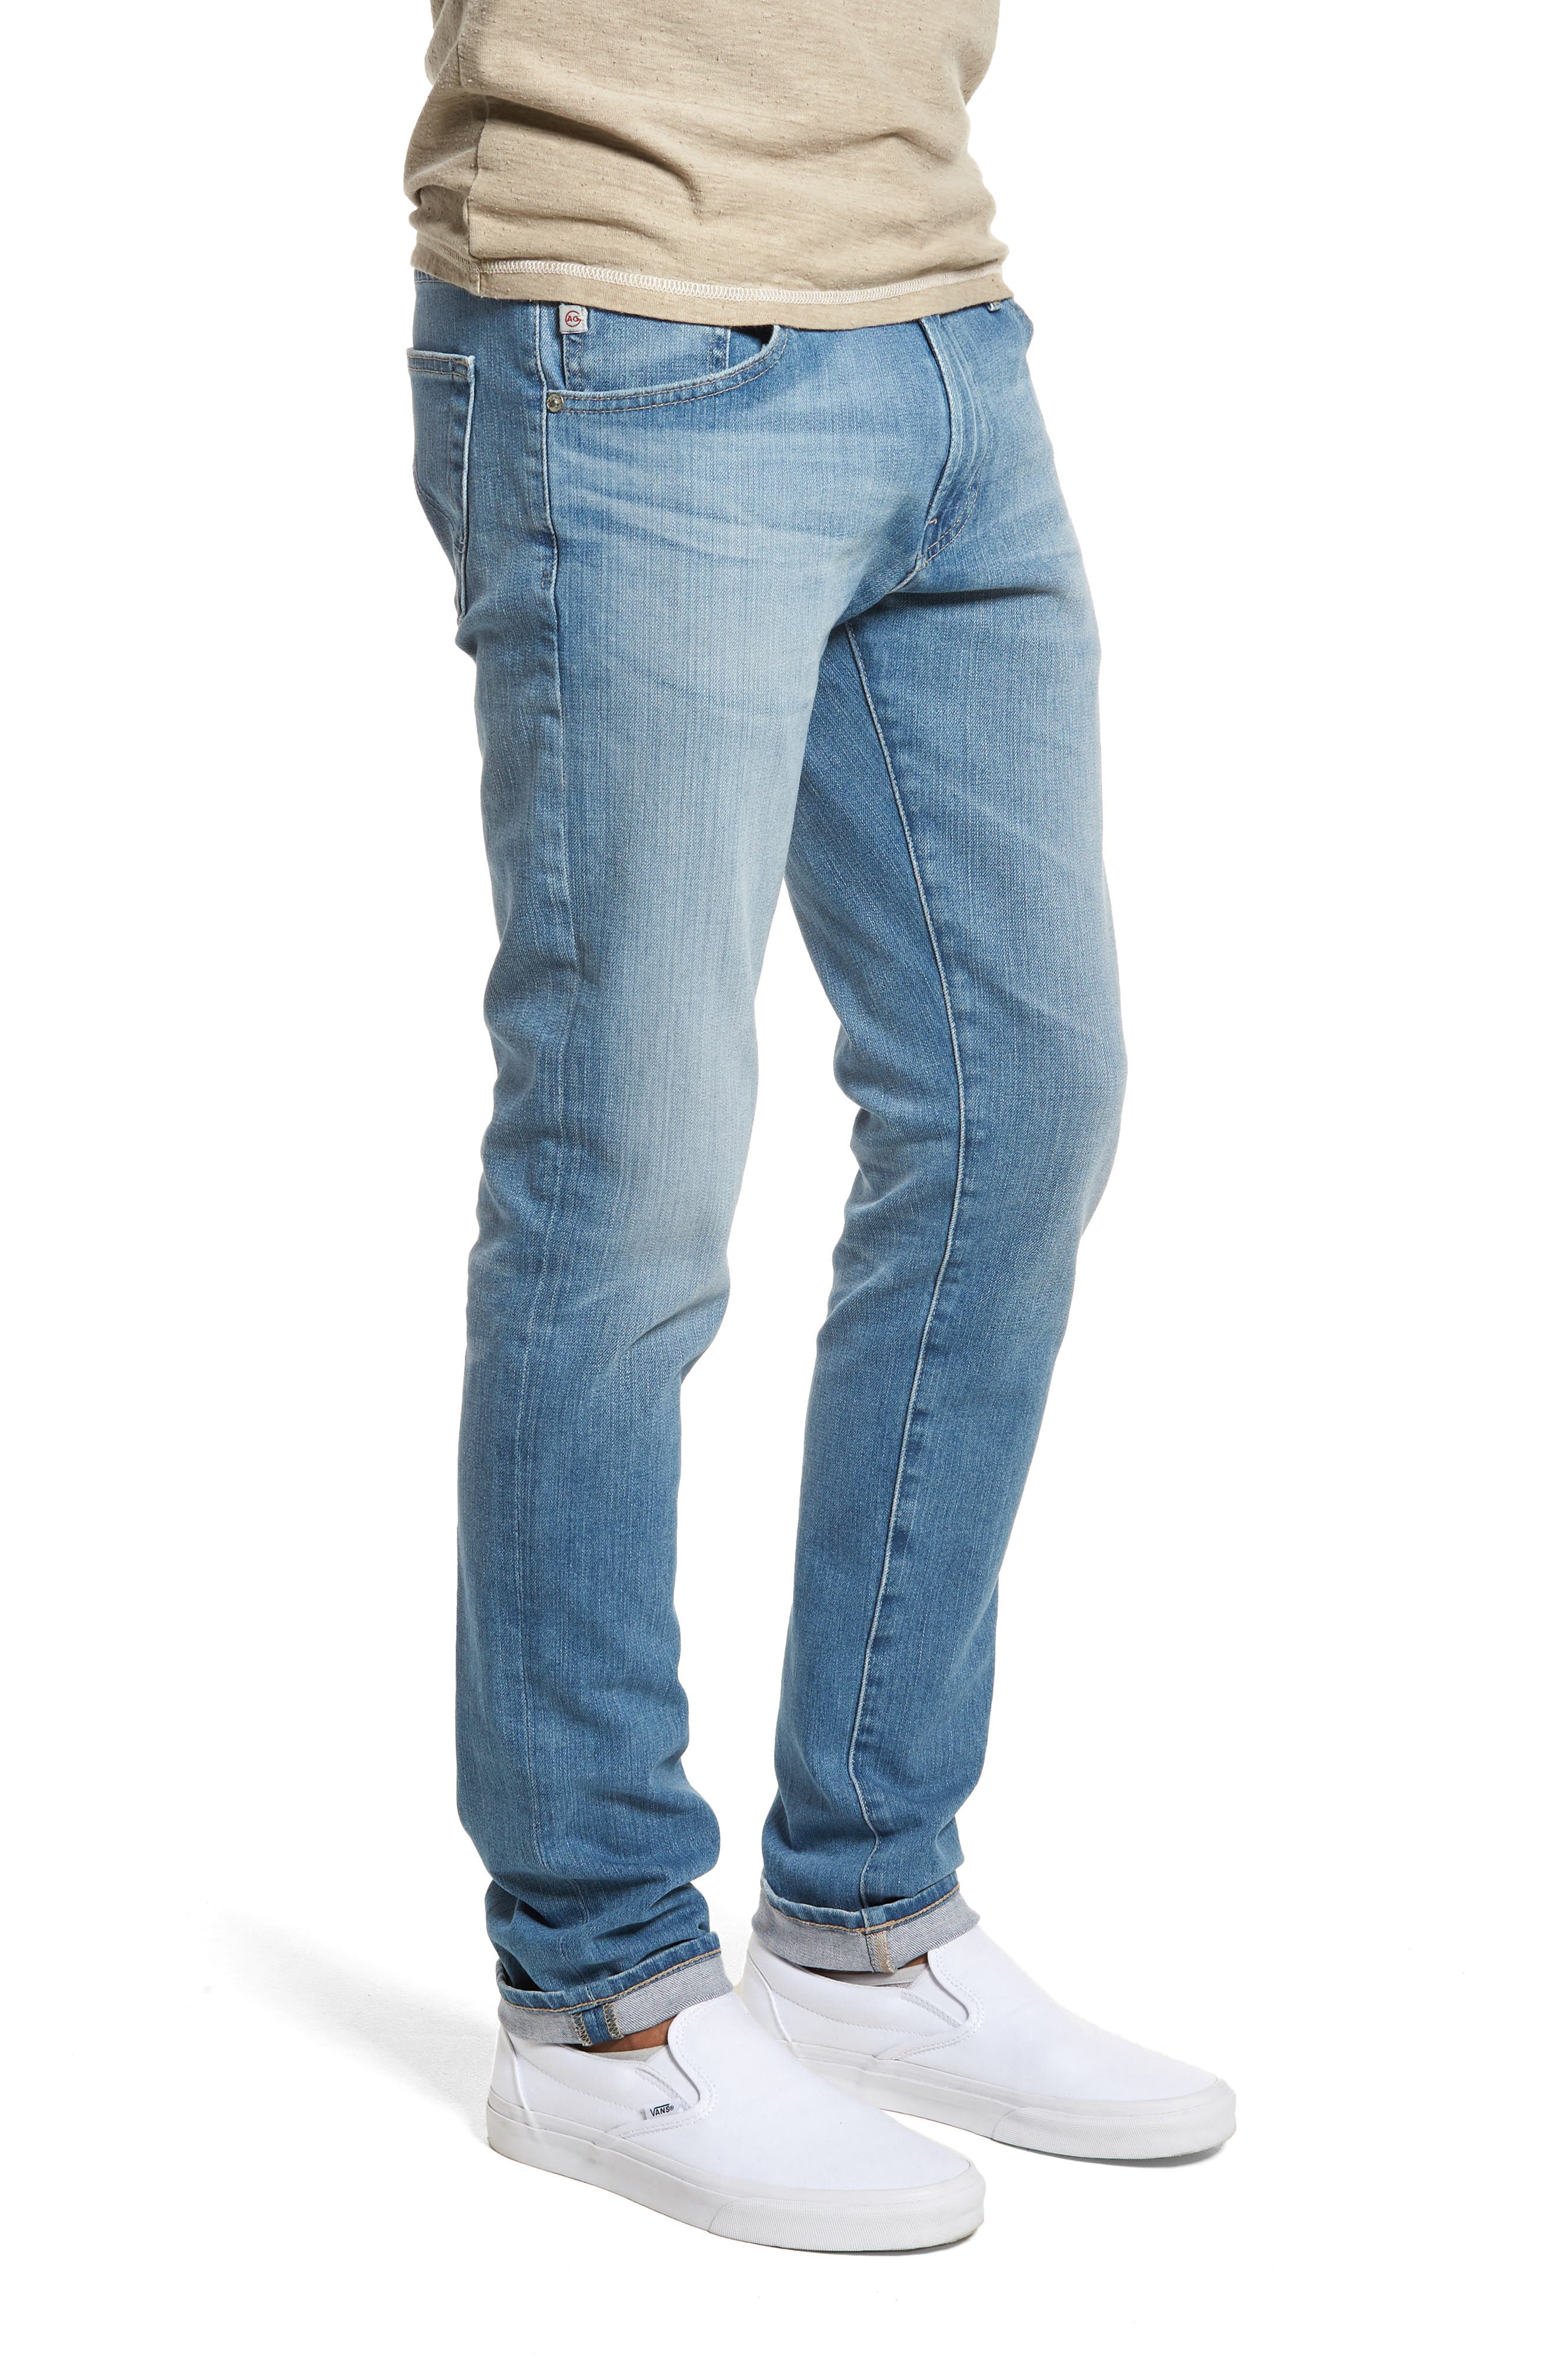 Dylan Skinny Fit Jeans,                             Alternate thumbnail 3, color,                             498